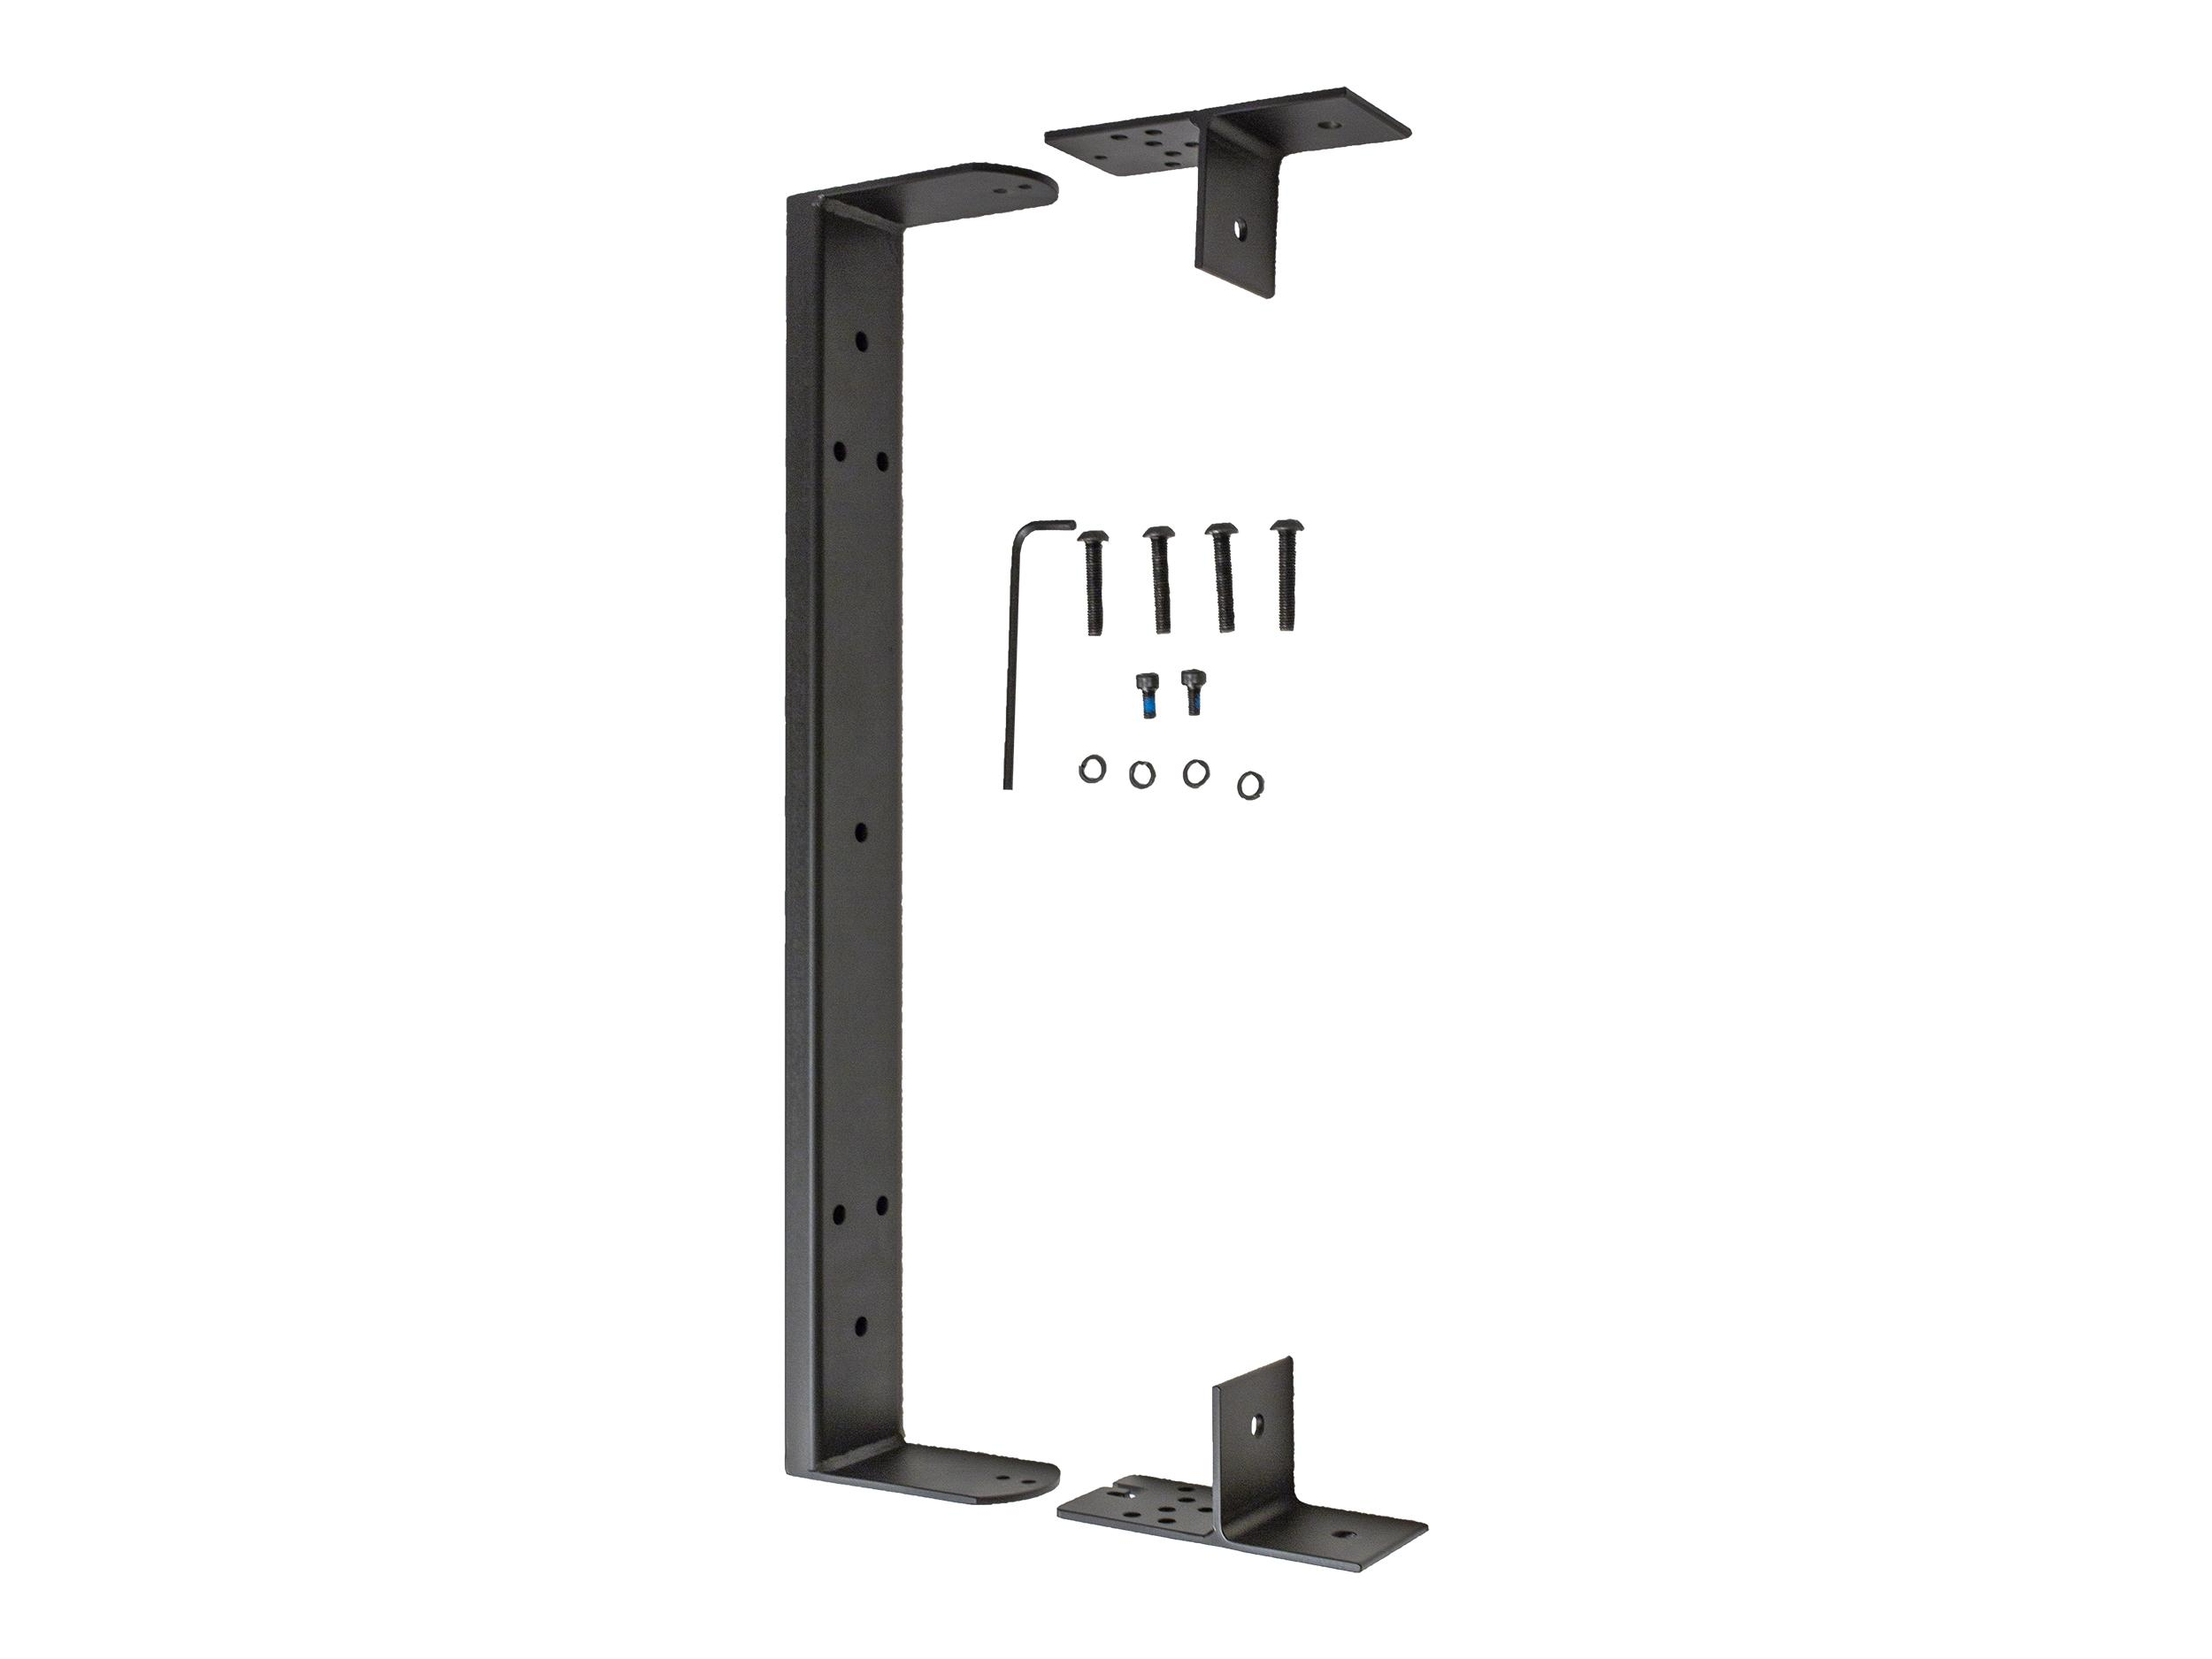 ETXBRKT15 Wall Mount Bracket for ETX-15P by Electro-Voice